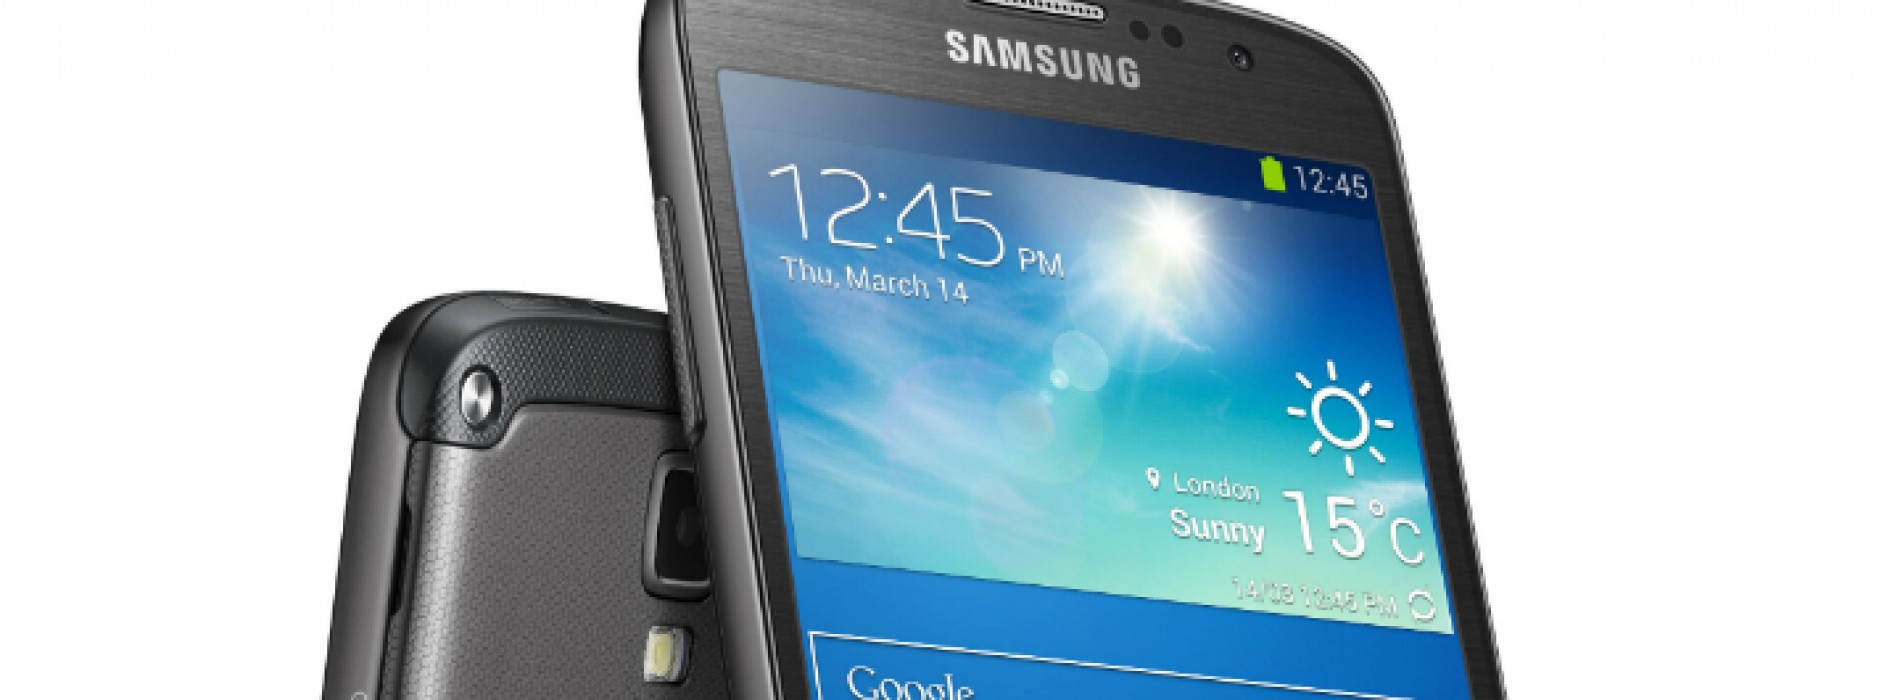 AT&T scores exclusive Samsung Galaxy S4 Active